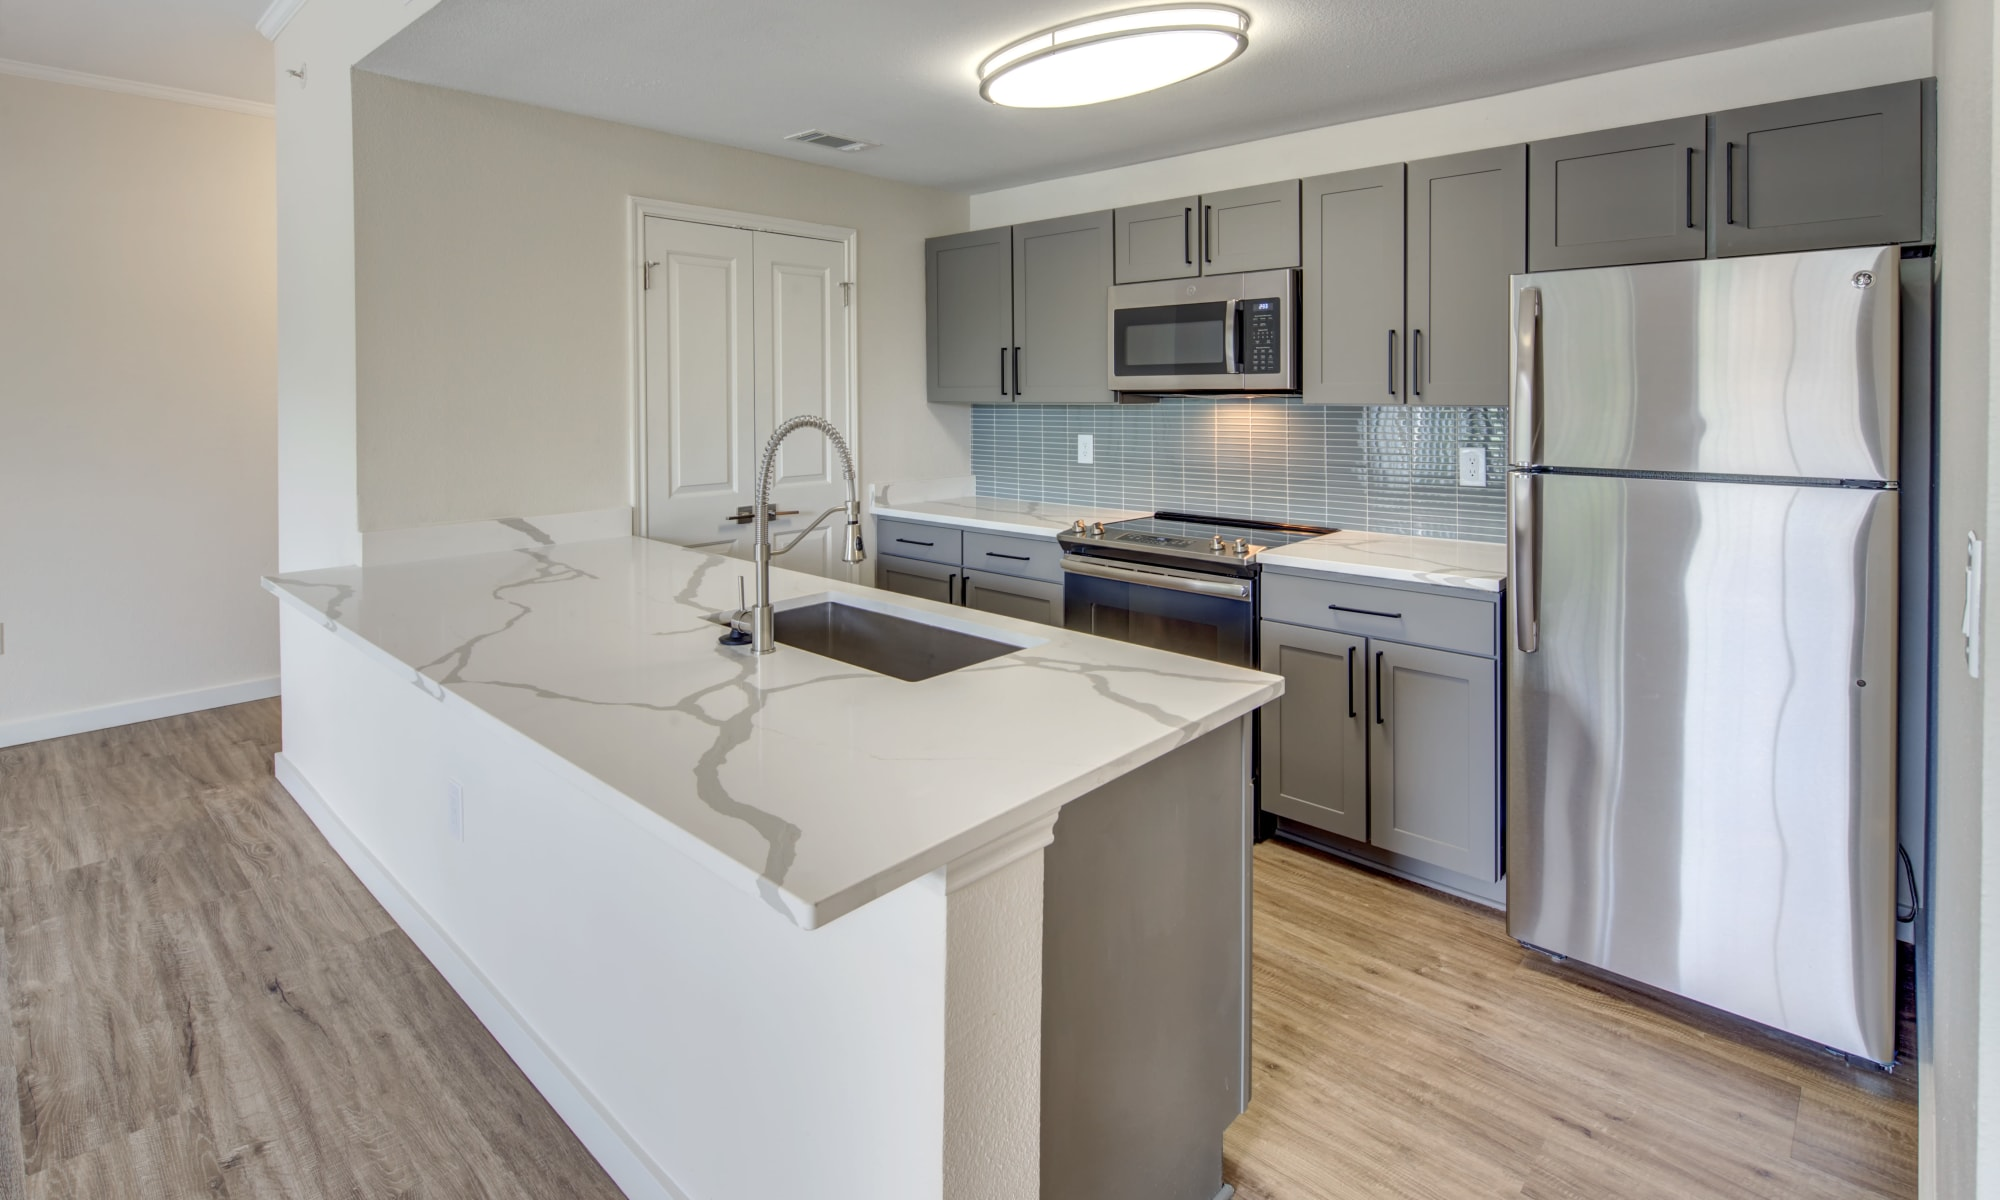 Stainless-steel appliances and quartz countertops in a model home's kitchen at Riata Austin in Austin, Texas